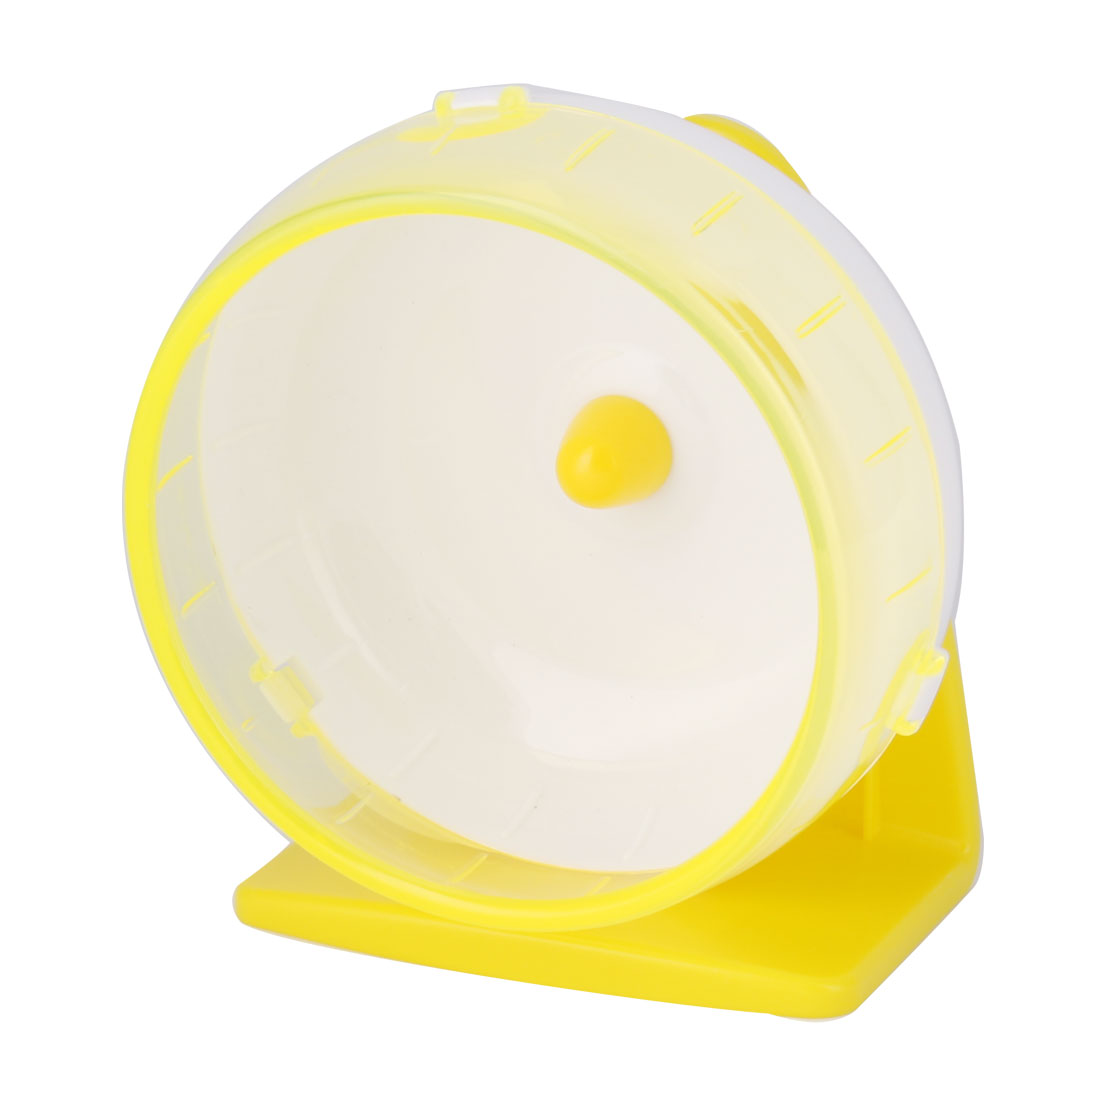 Pet Hamster Gerbil Plastic Play Stand Wheel Toy Holder Yellow w Suction Cup